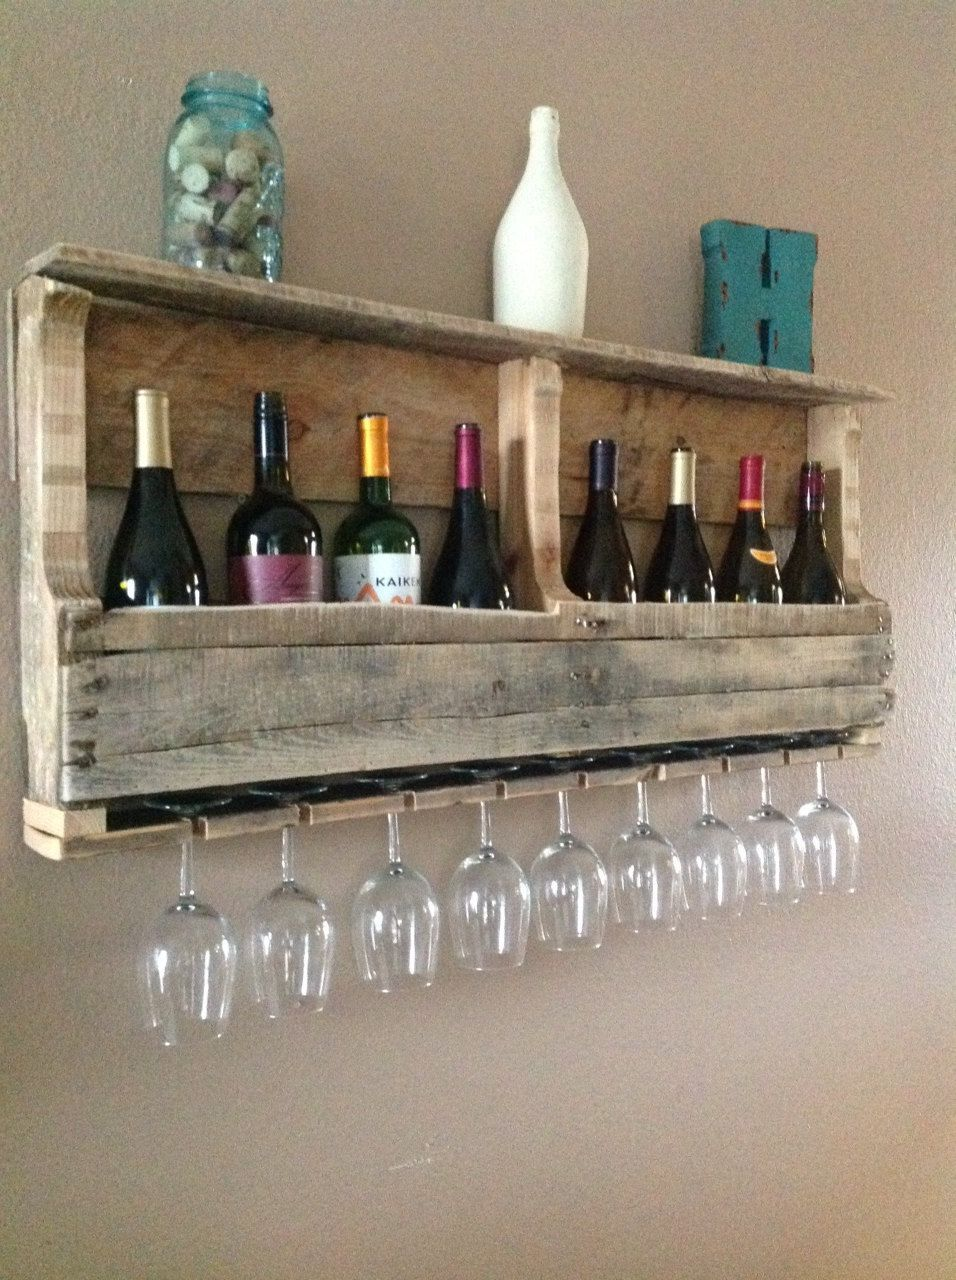 Clever Ways Of Adding Wine Glass Racks To Your Homes Décor Pallet